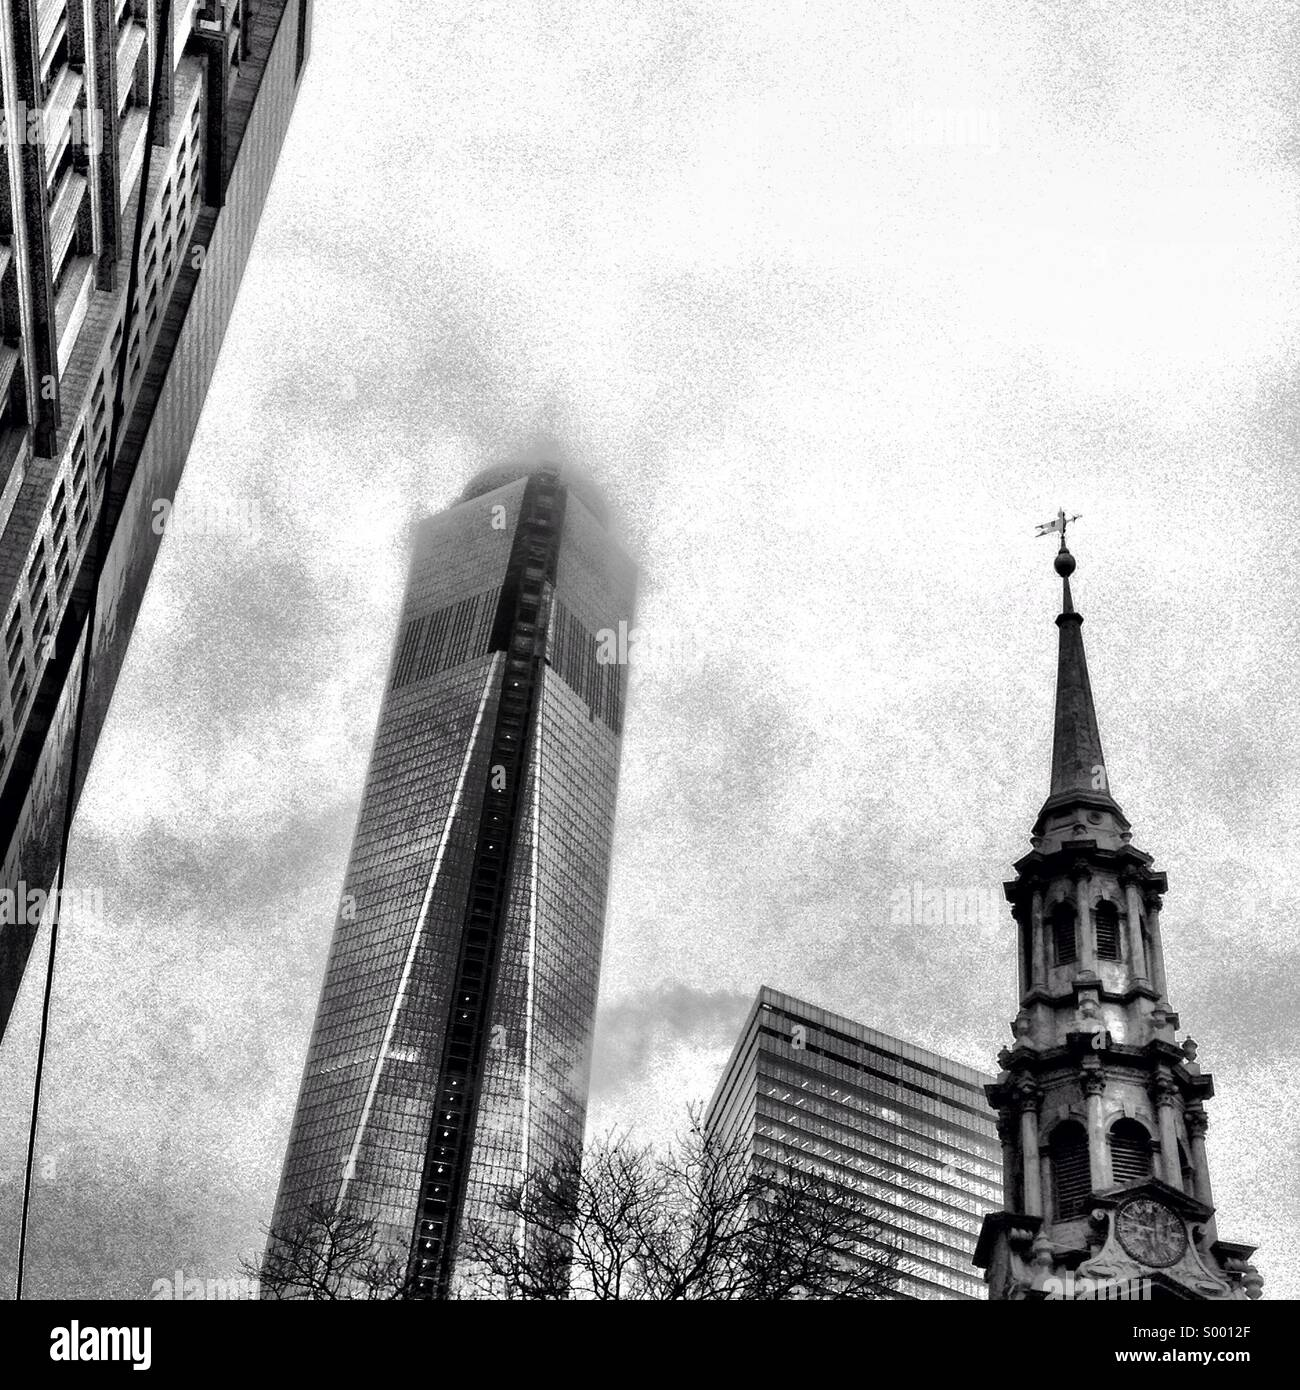 St. Paul's Chapel and the Freedom Tower in a fog. - Stock Image